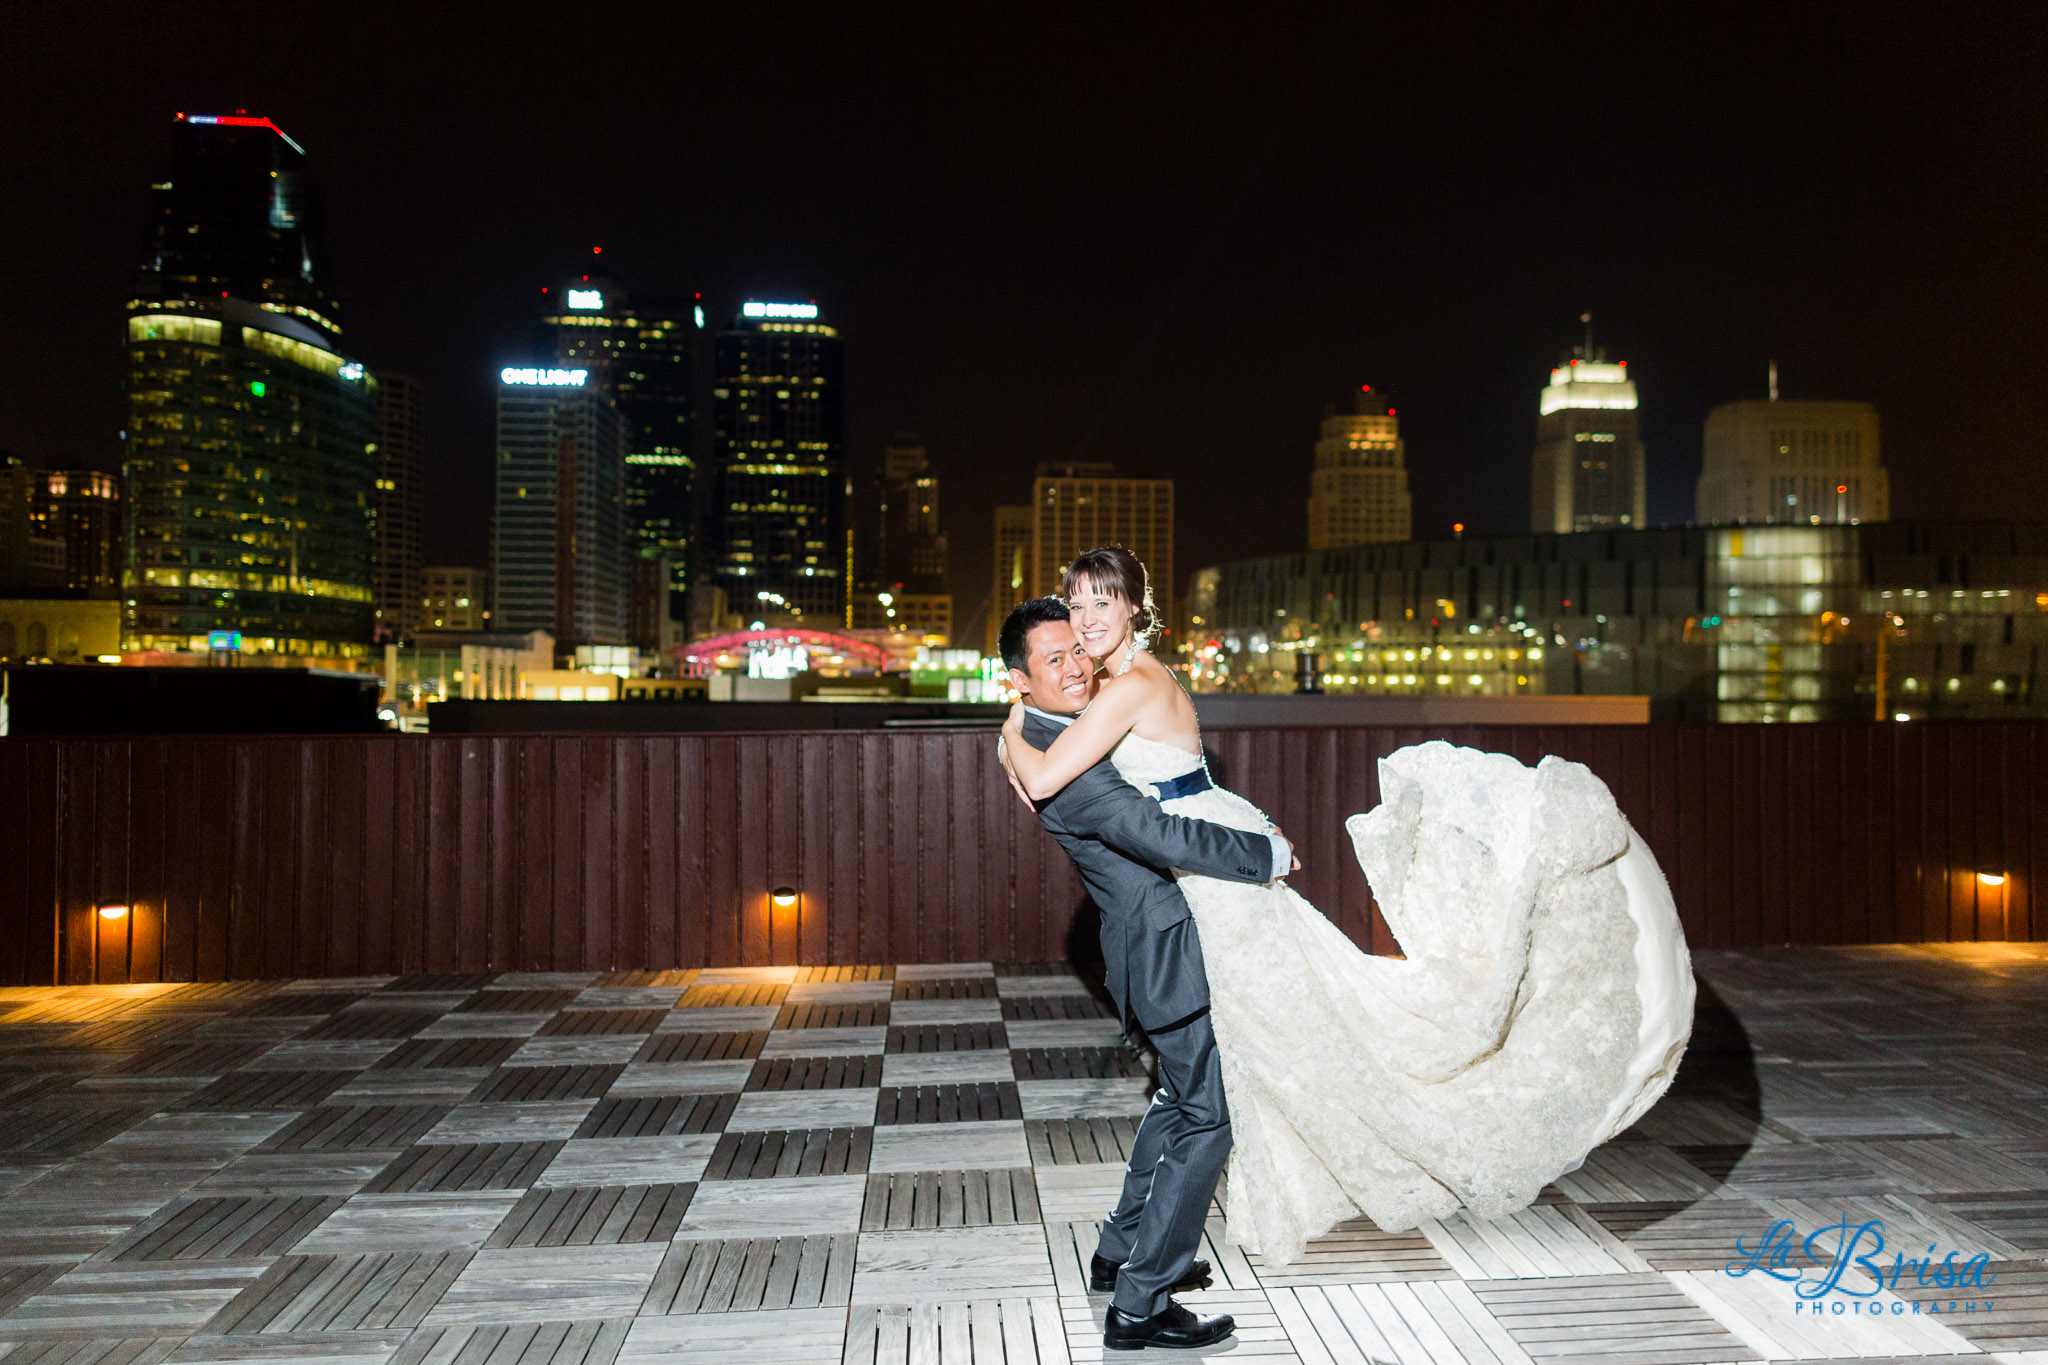 Catherine & Phillip Preview | Wedding Photography | Kansas City, MO | Chris Hsieh